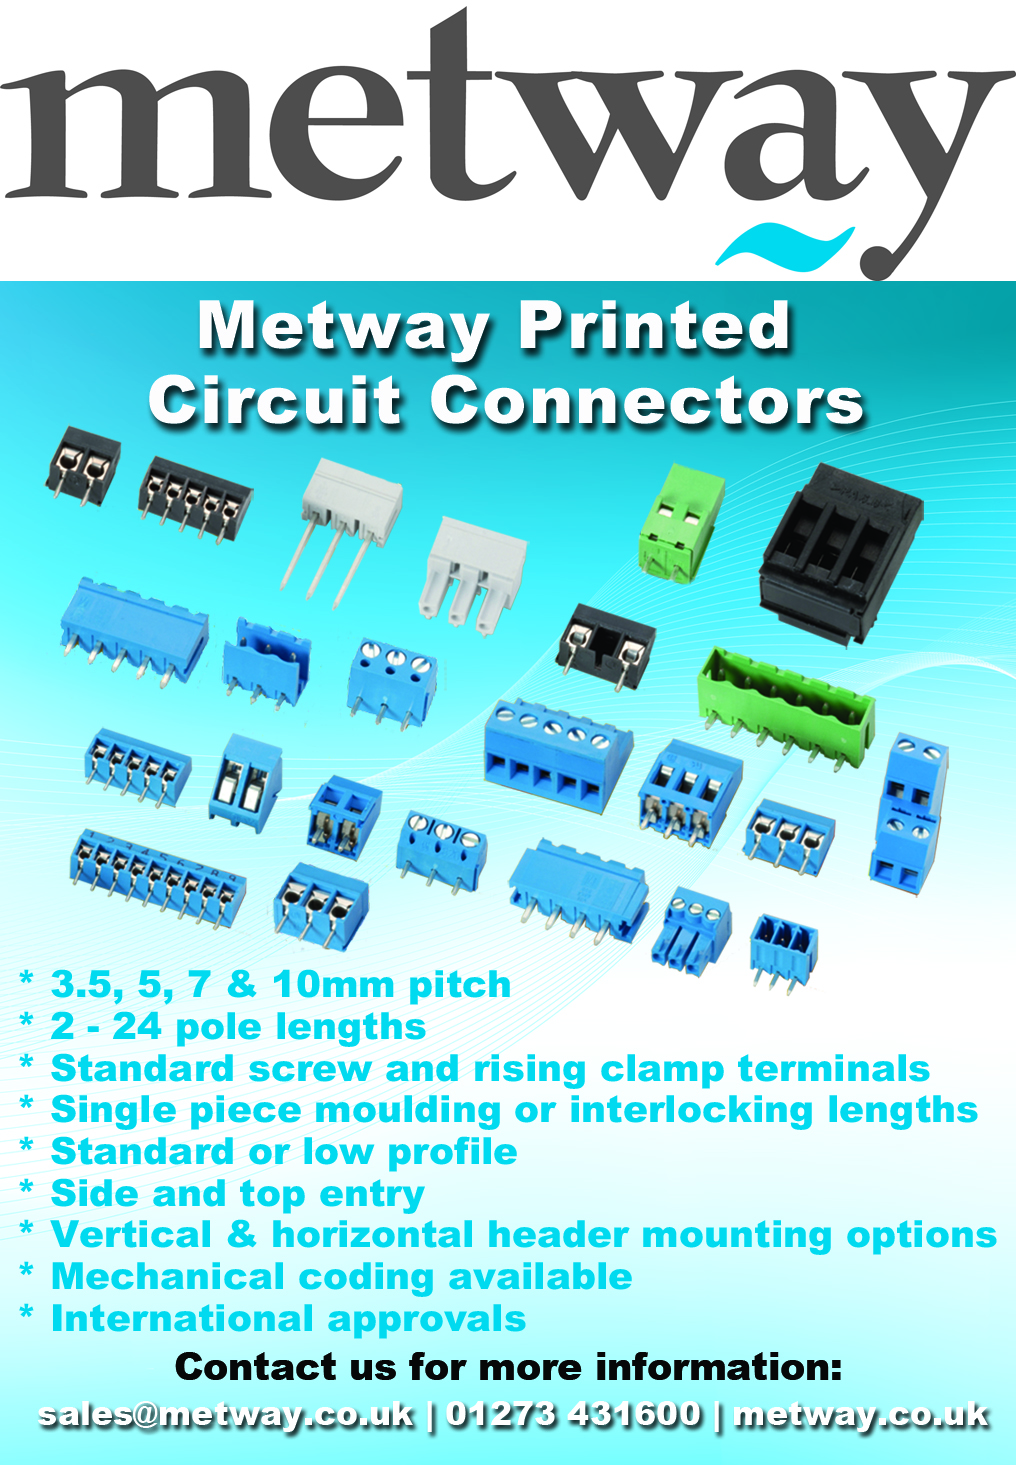 Printed Circuit Connectors